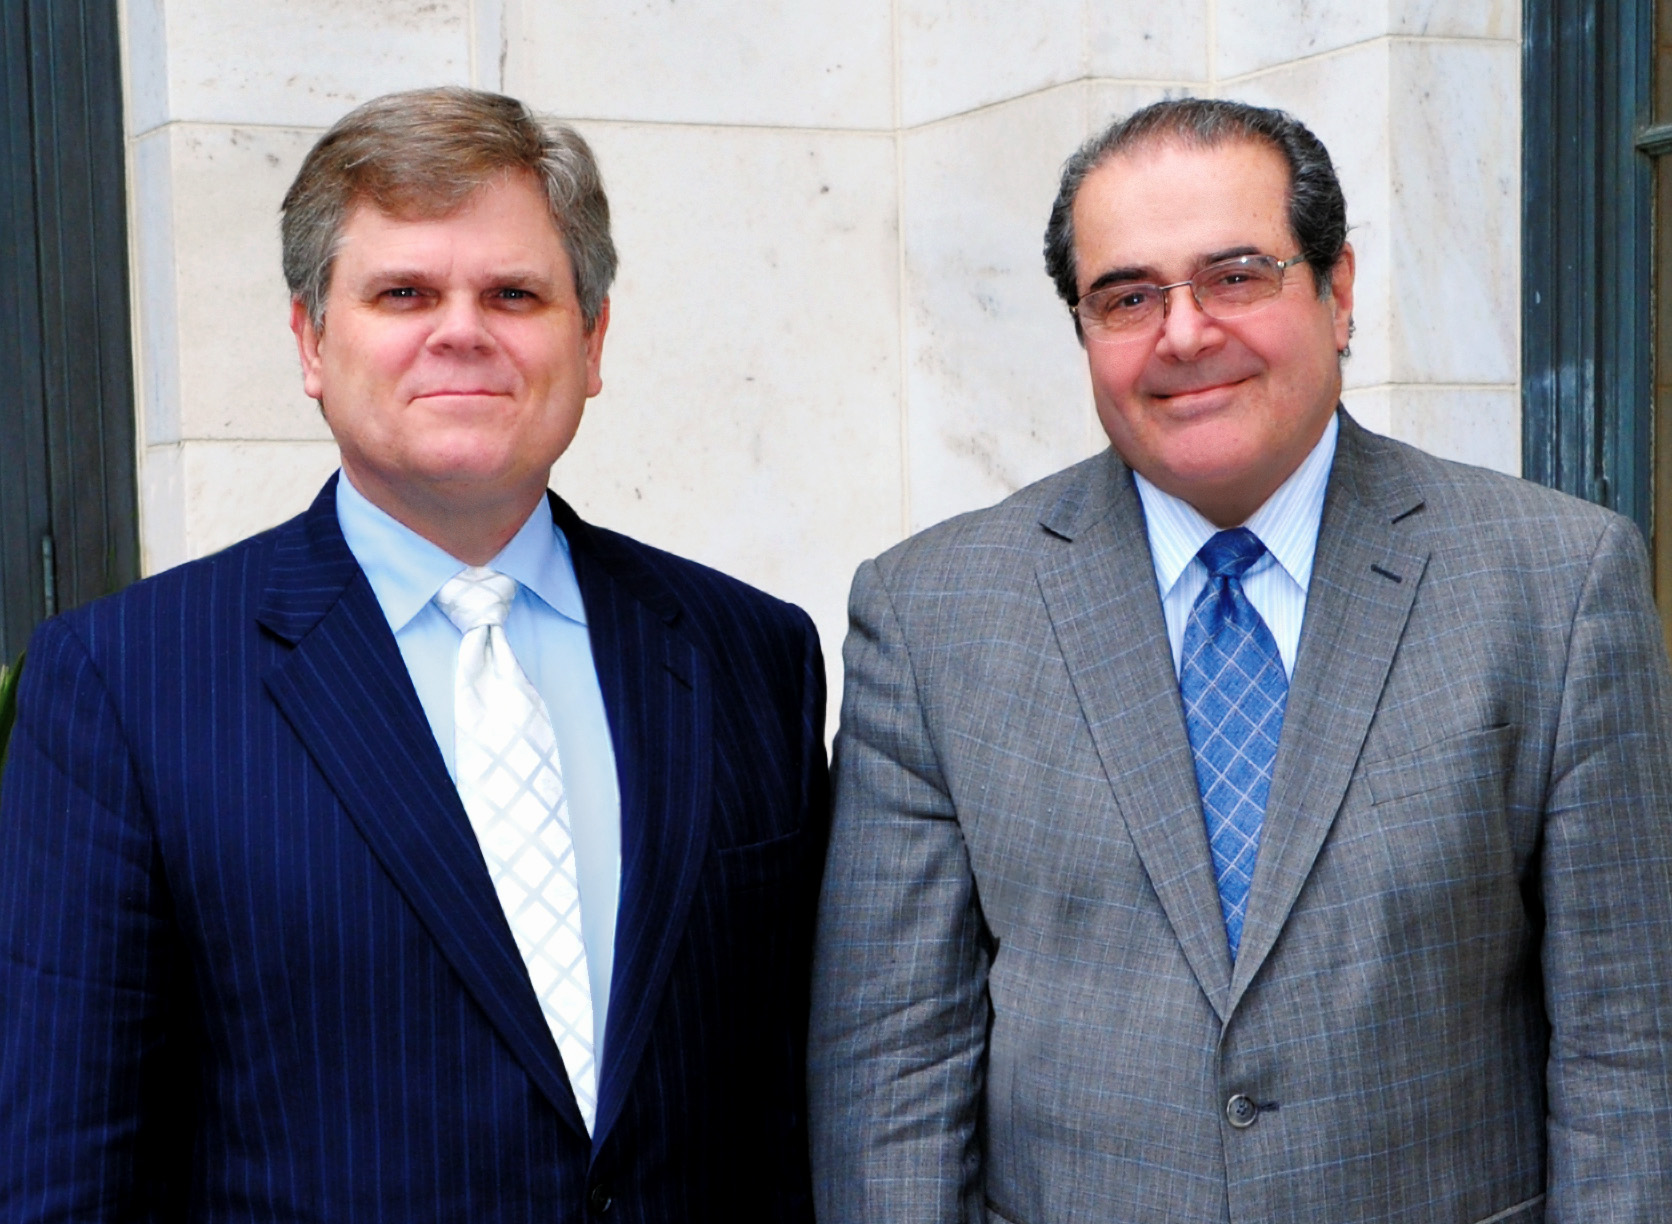 Professor Bryan Garner and Justice Antonin Scalia